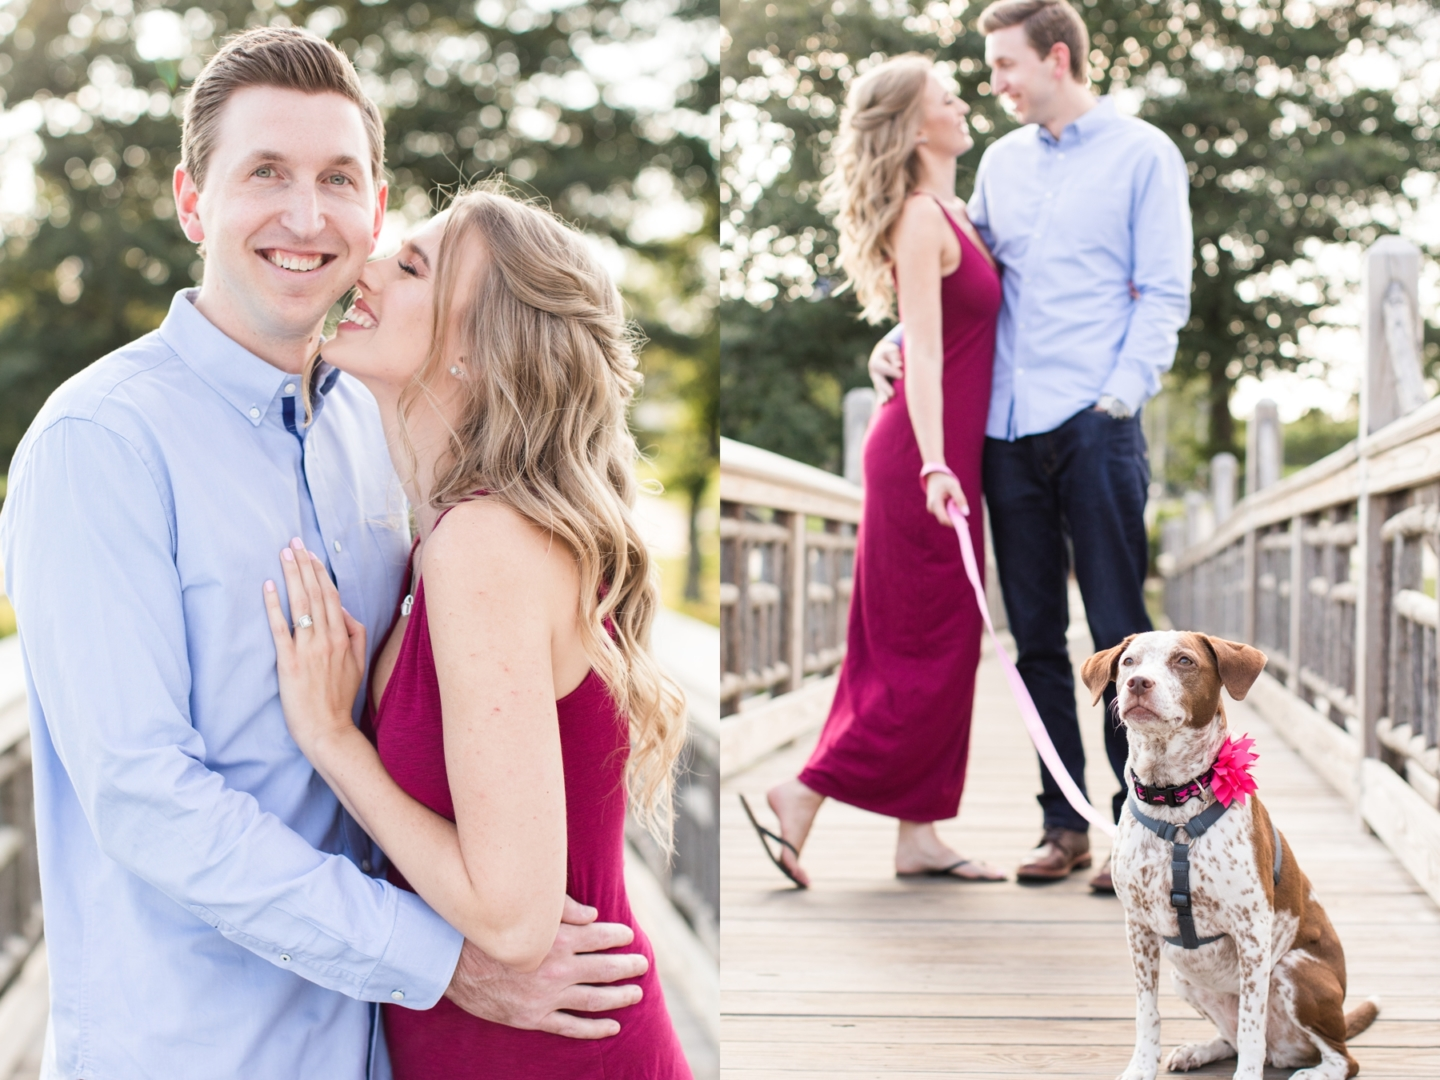 Melissa + Michael's Engagement Session at Spring Lake